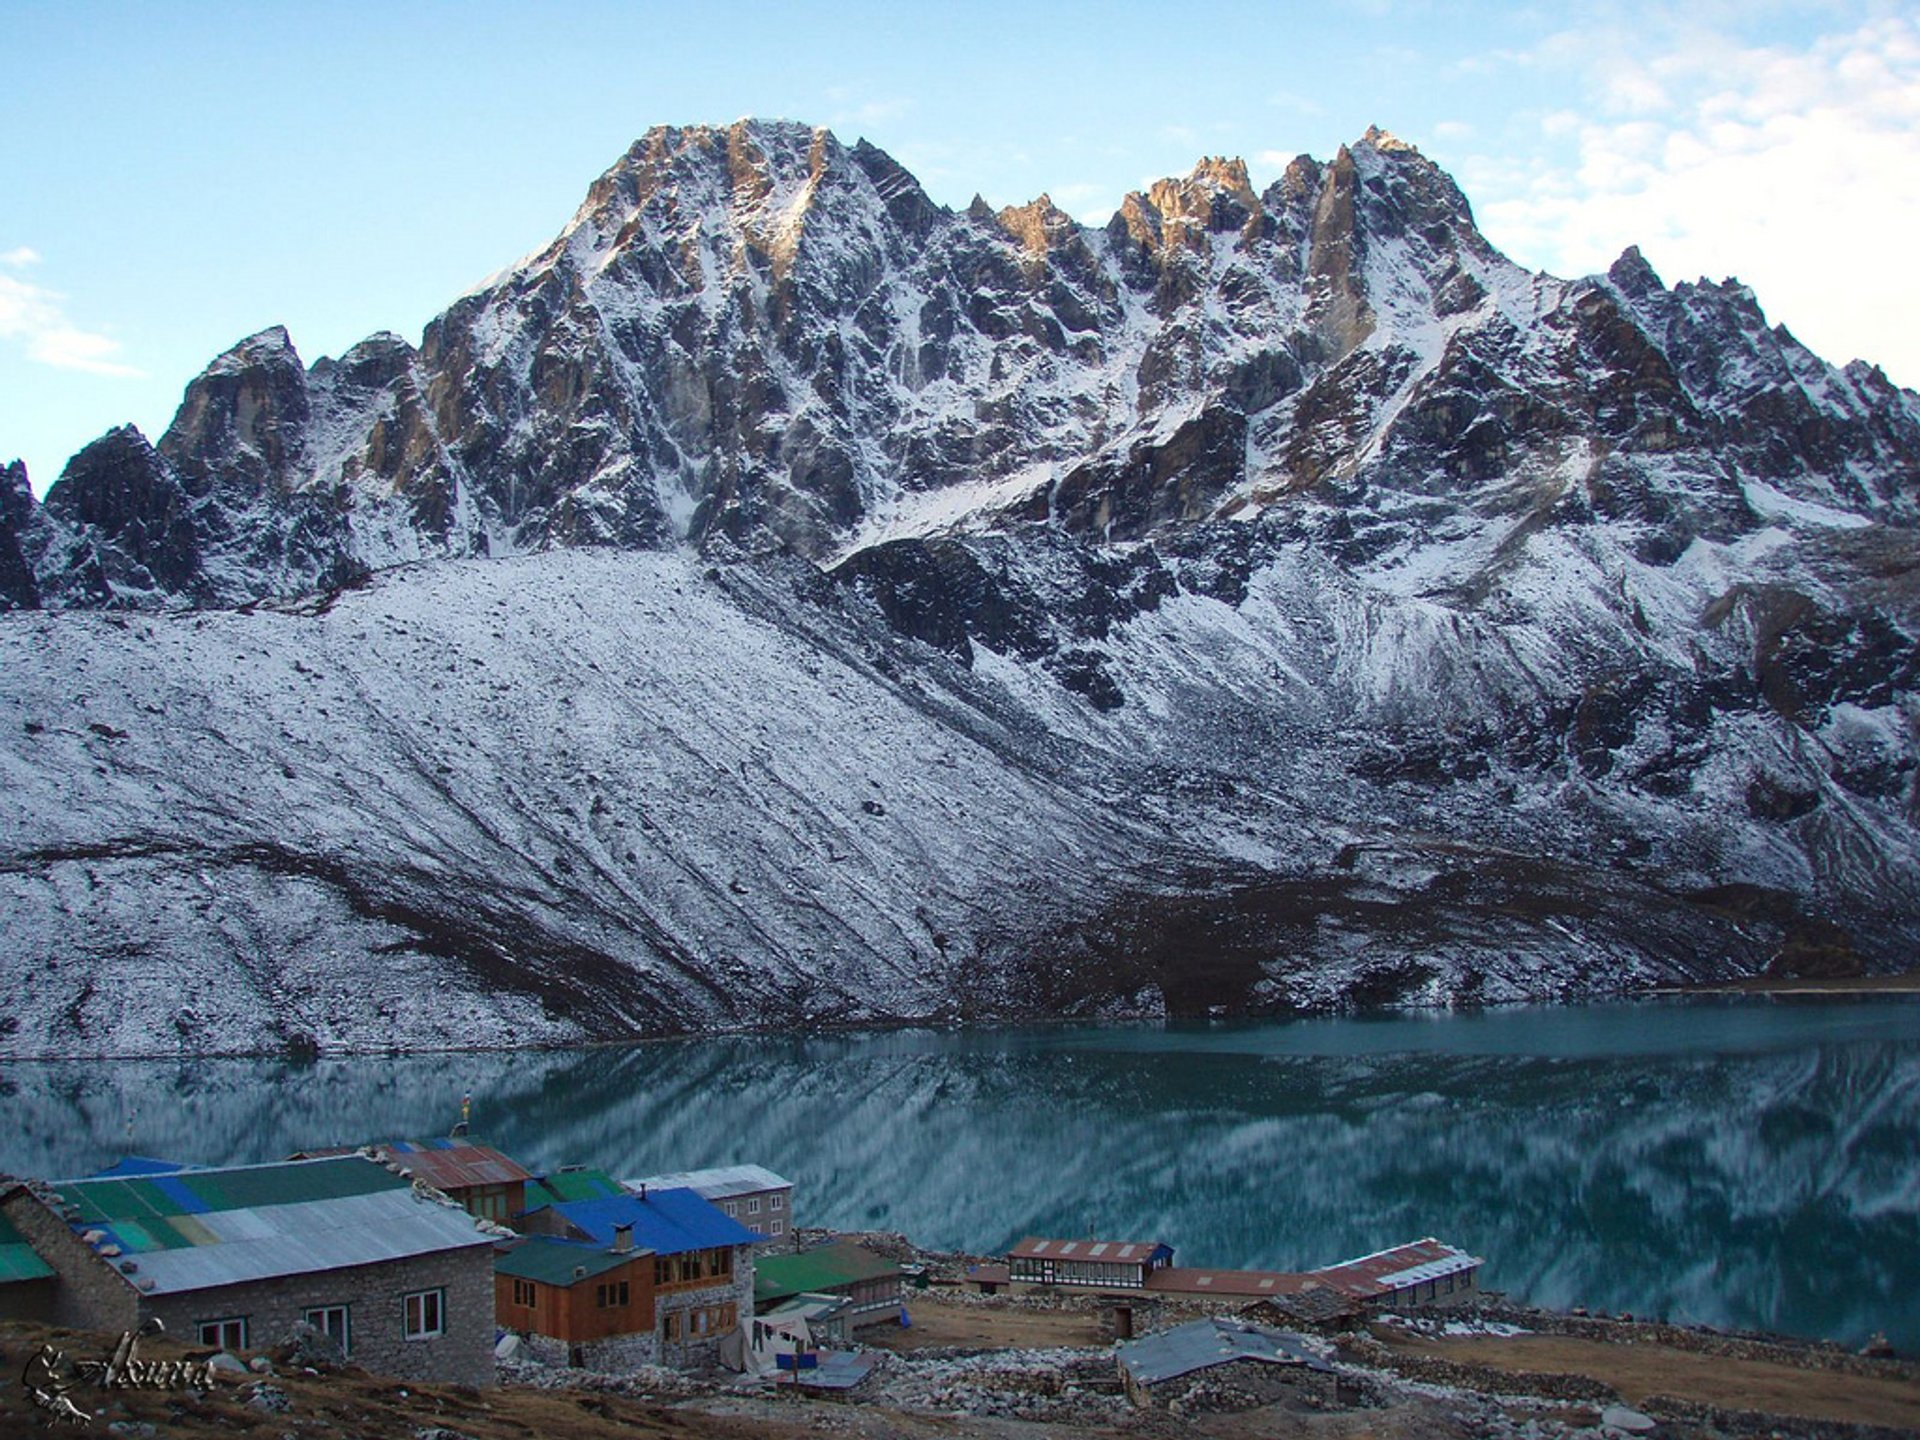 Observing Everest from the Gokyo Lakes in Nepal 2019 - Best Time